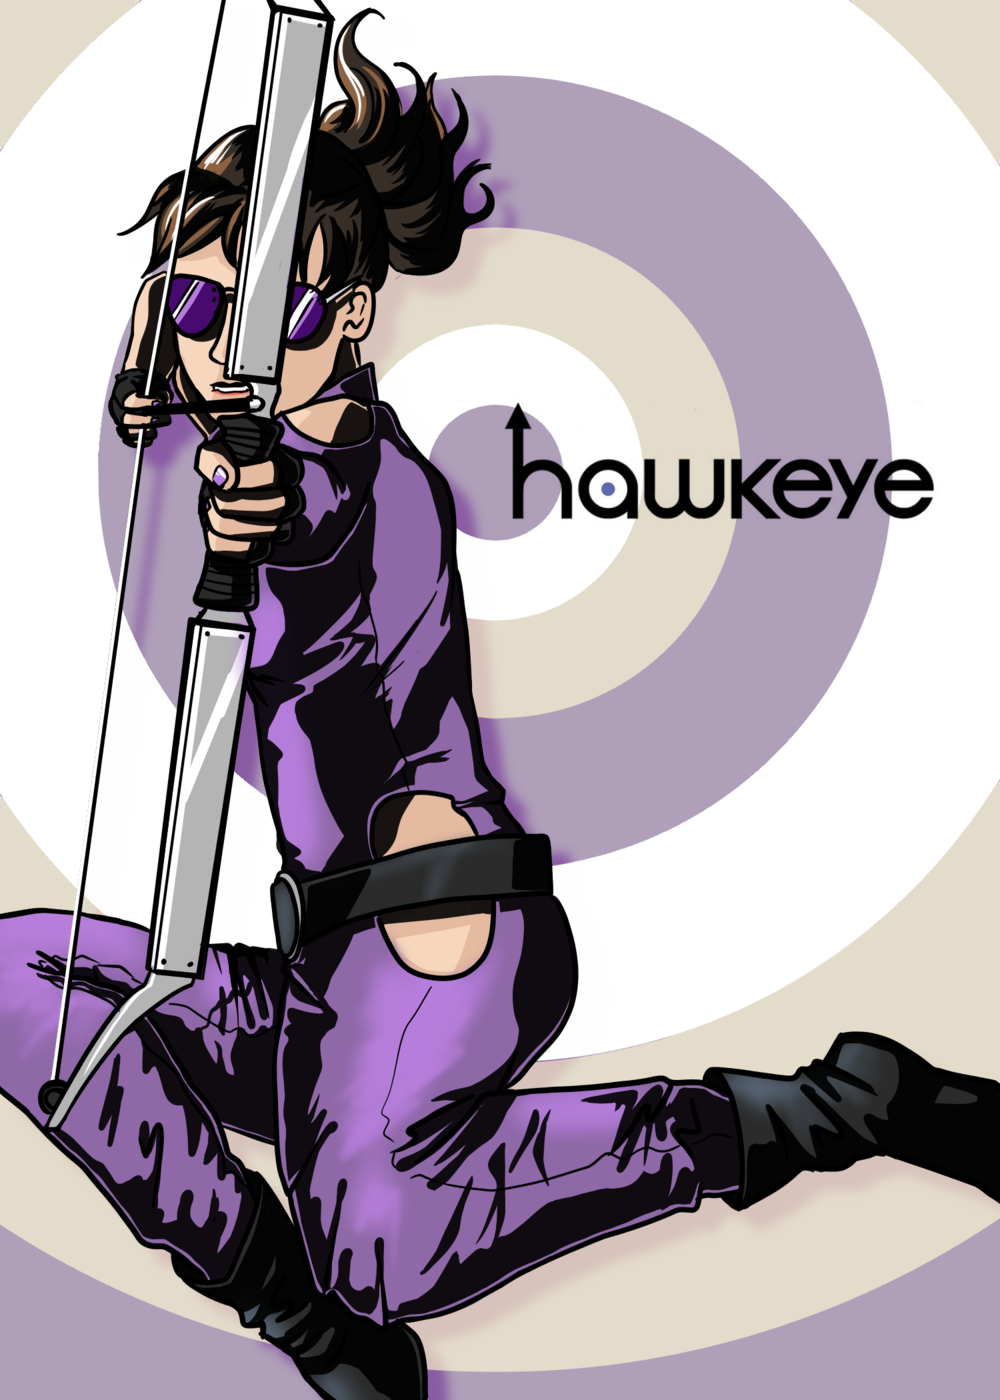 kate hawkeye poster.png